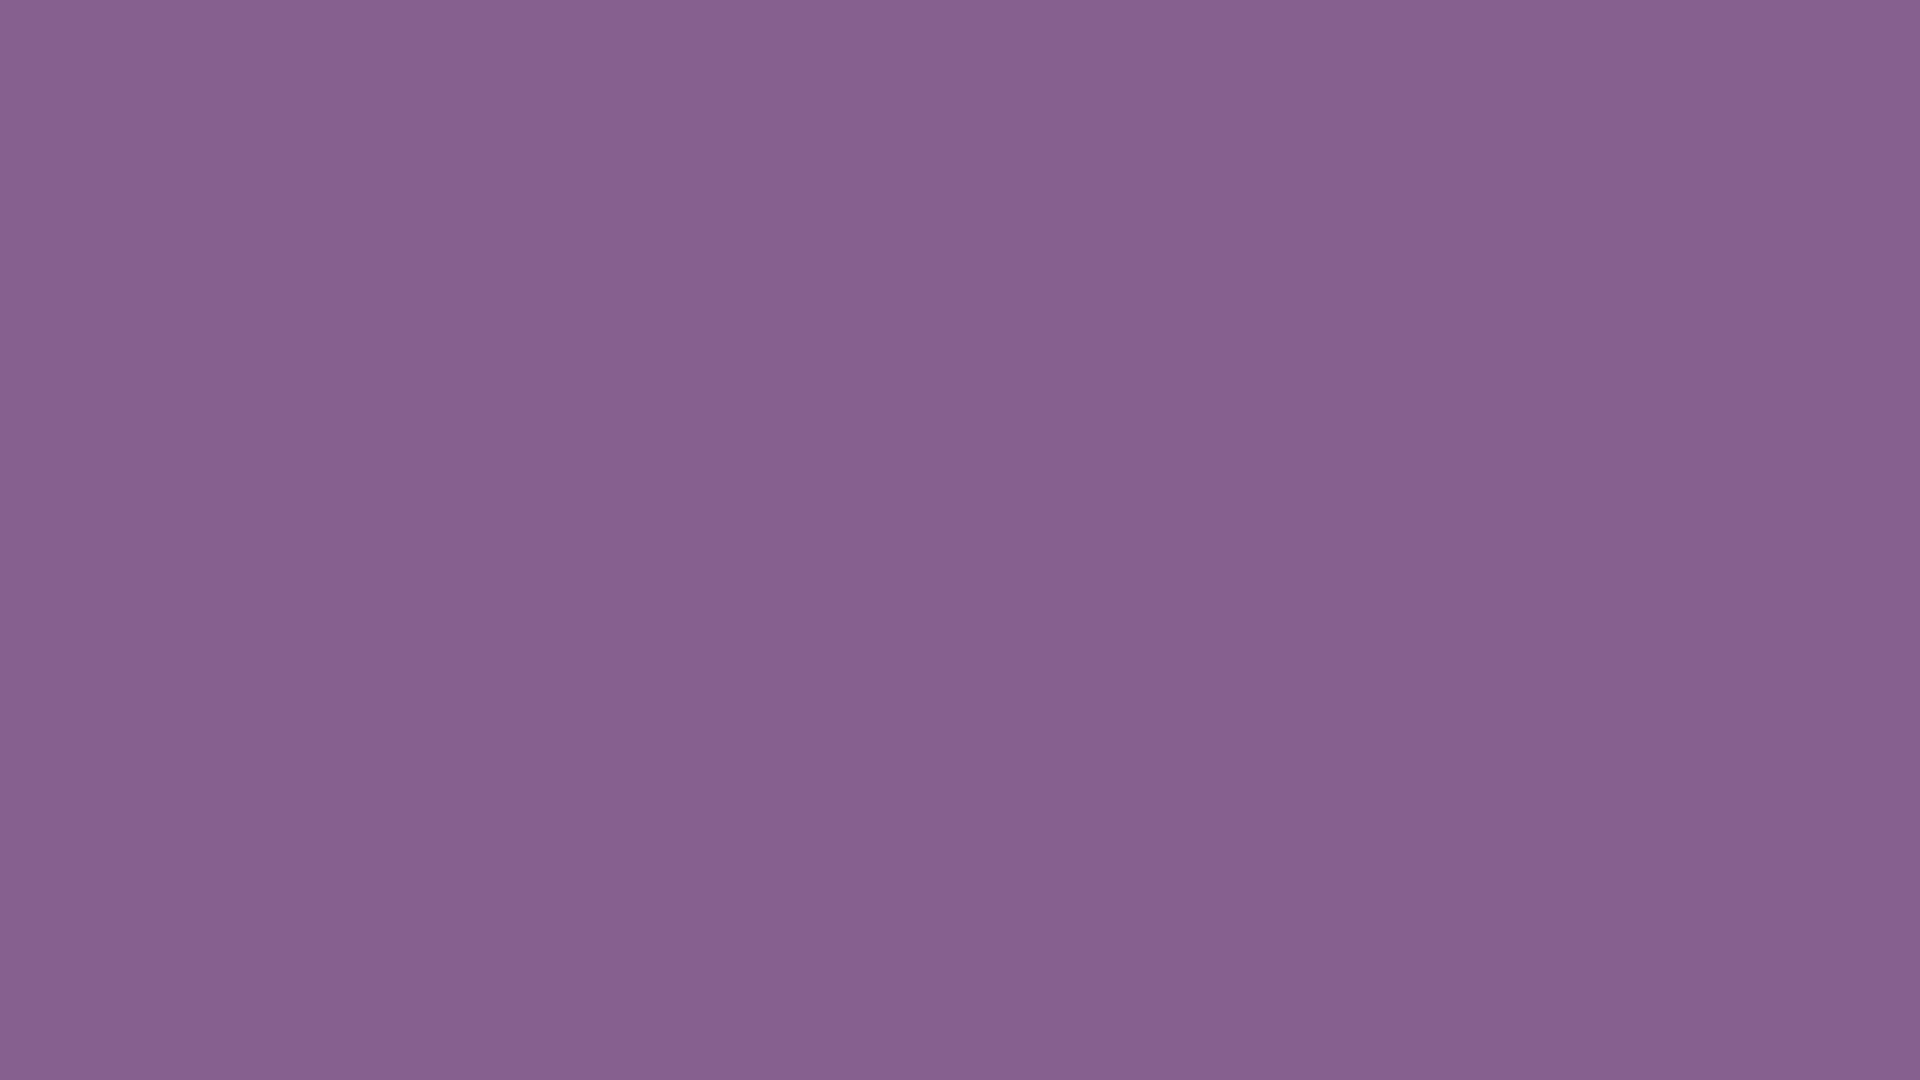 1920x1080 French Lilac Solid Color Background